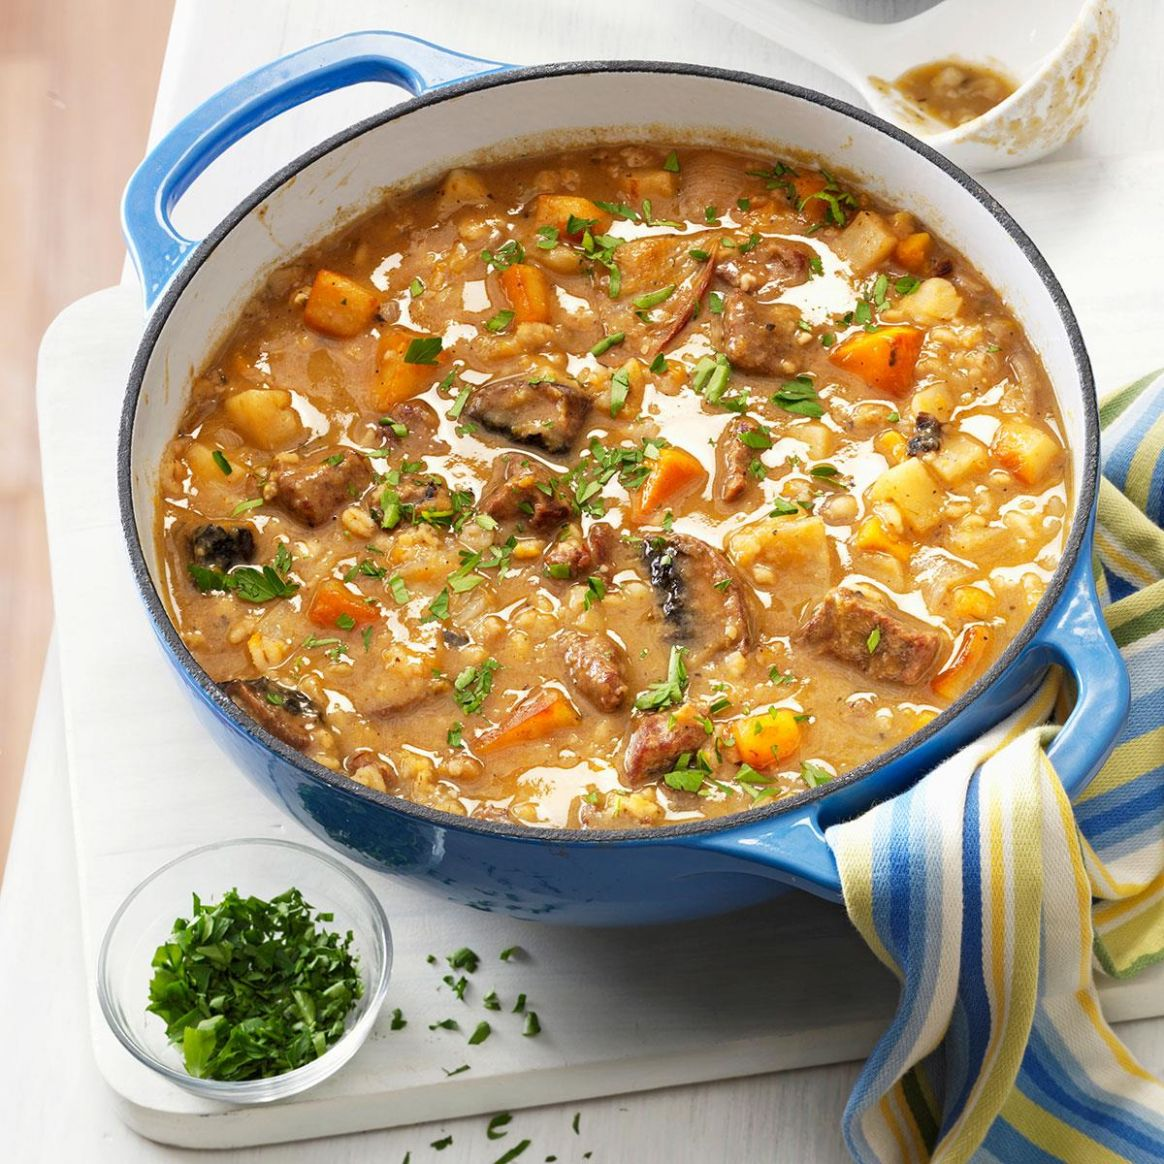 Beef Barley Soup with Roasted Vegetables - Recipes Beef Barley Soup